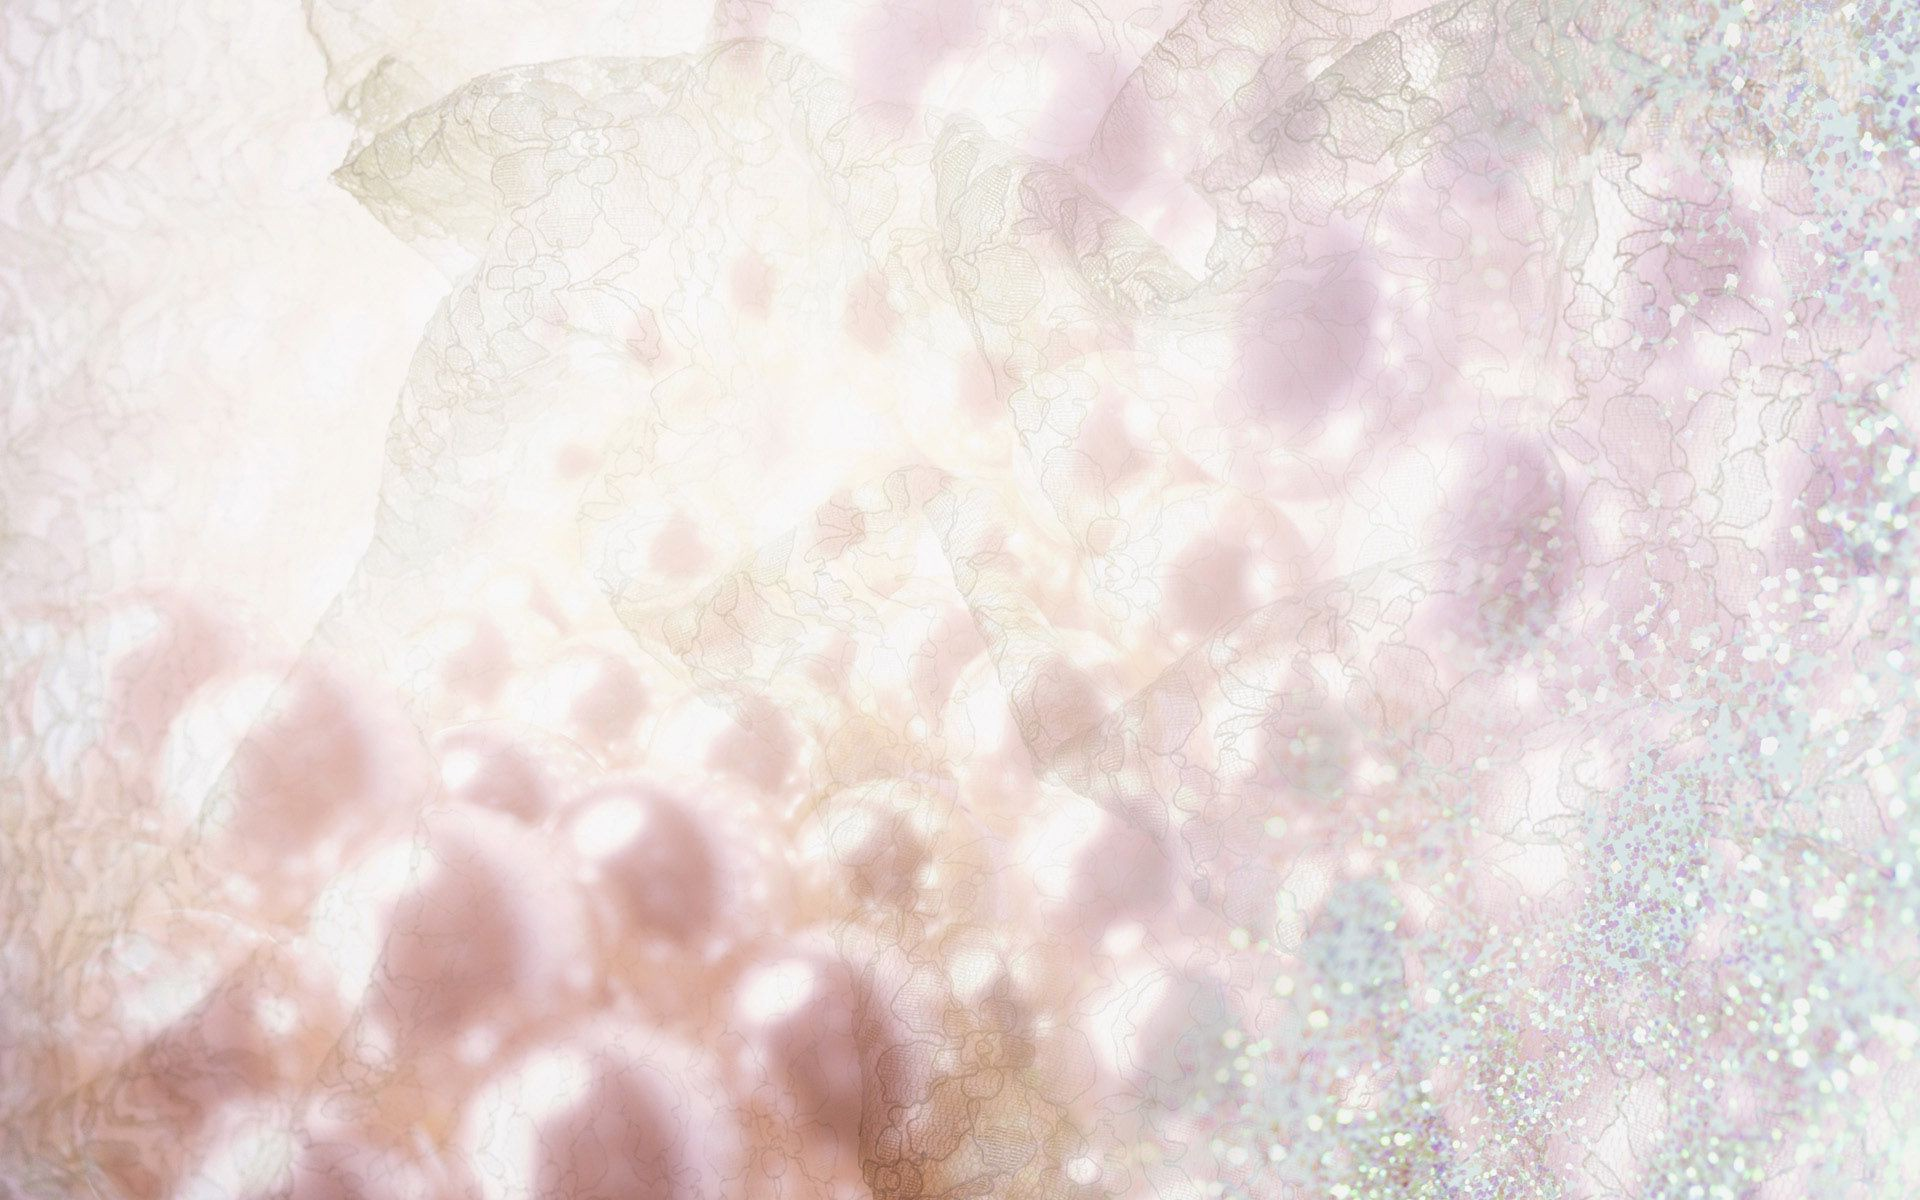 lace background images pearl background 183 download free amazing high resolution 3072